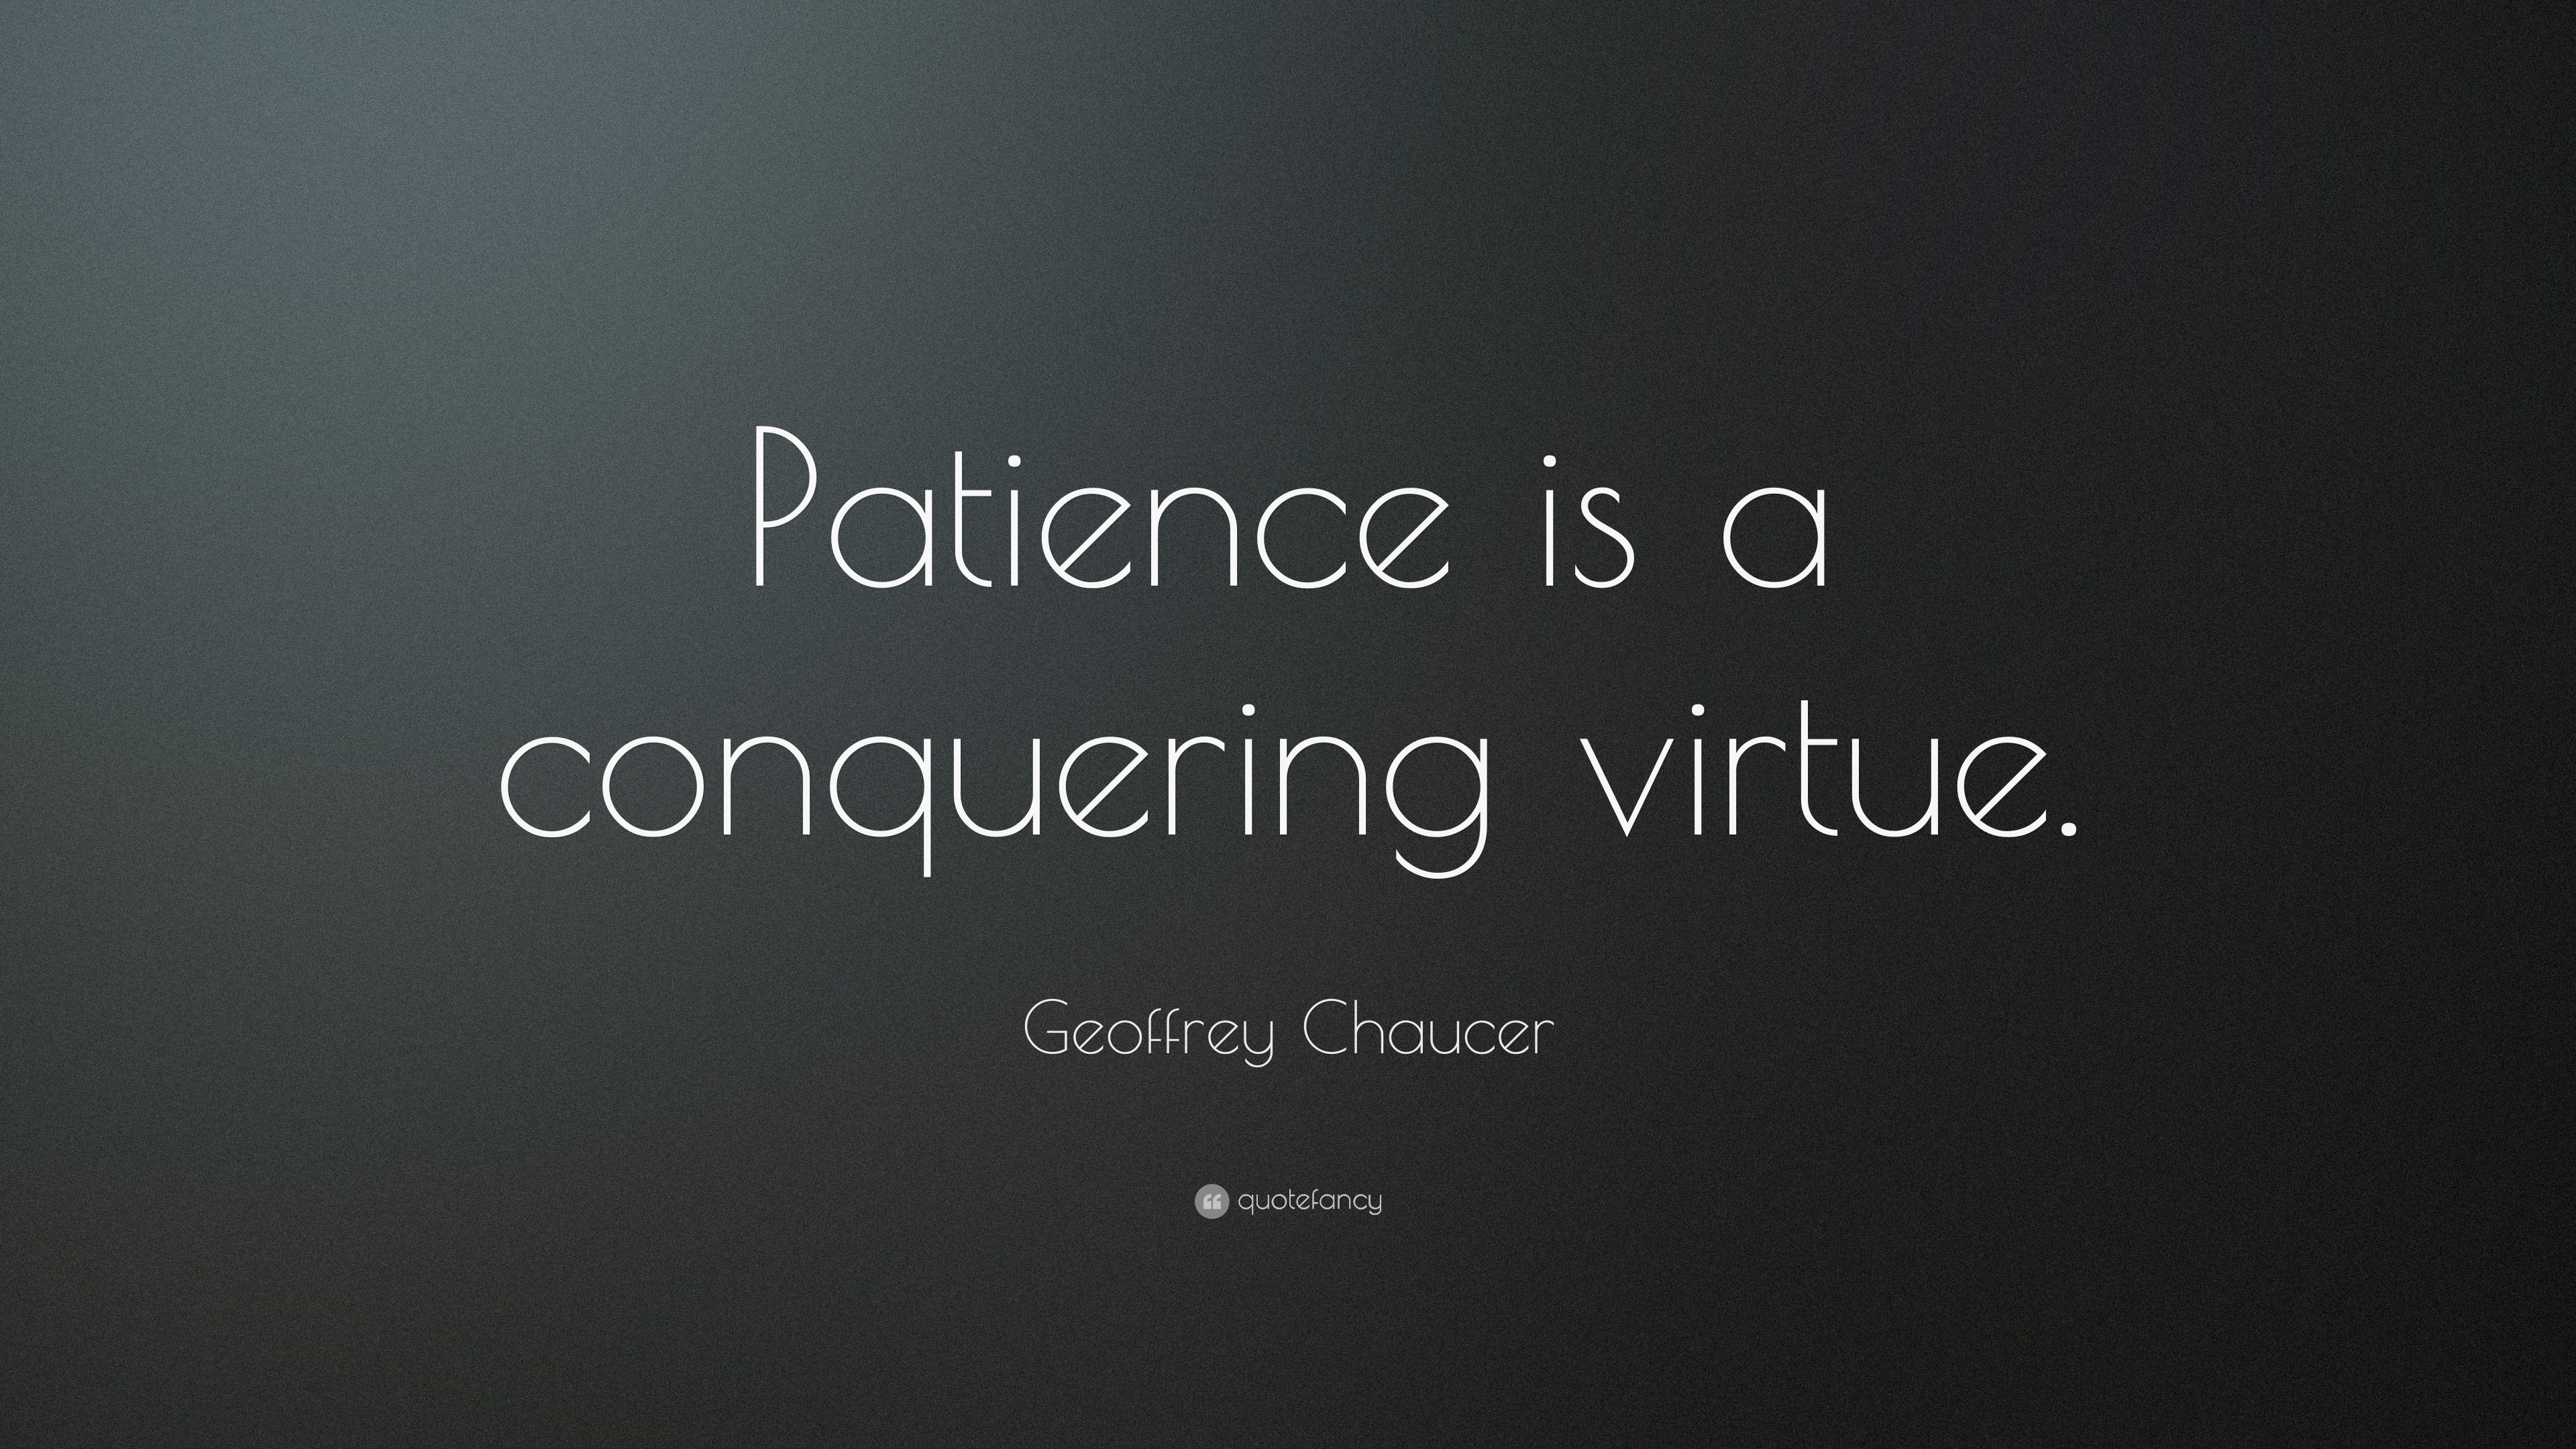 Nice Geoffrey Chaucer Quote: U201cPatience Is A Conquering Virtue.u201d